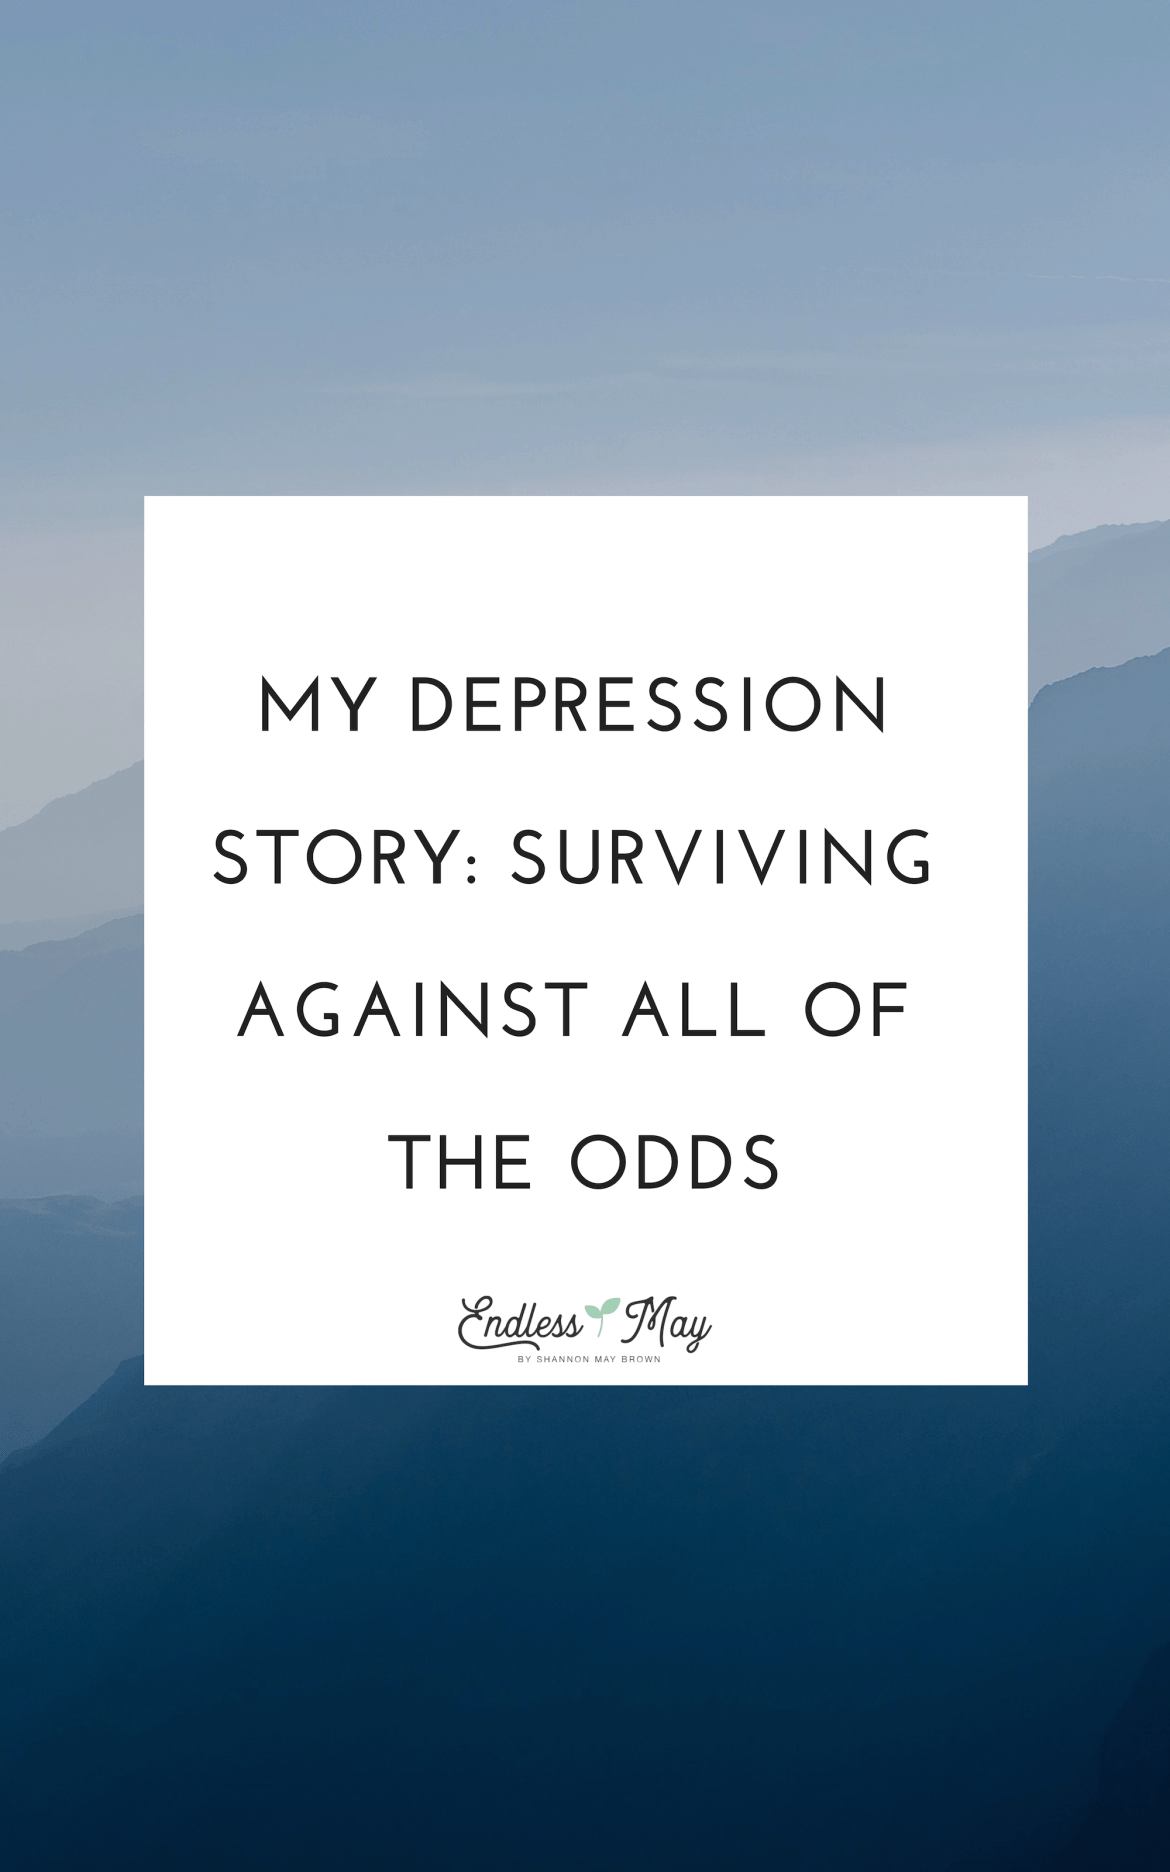 My Depression Story: Surviving Against All Of the Odds | An important guest post about the importance of suicide awareness in colleges.